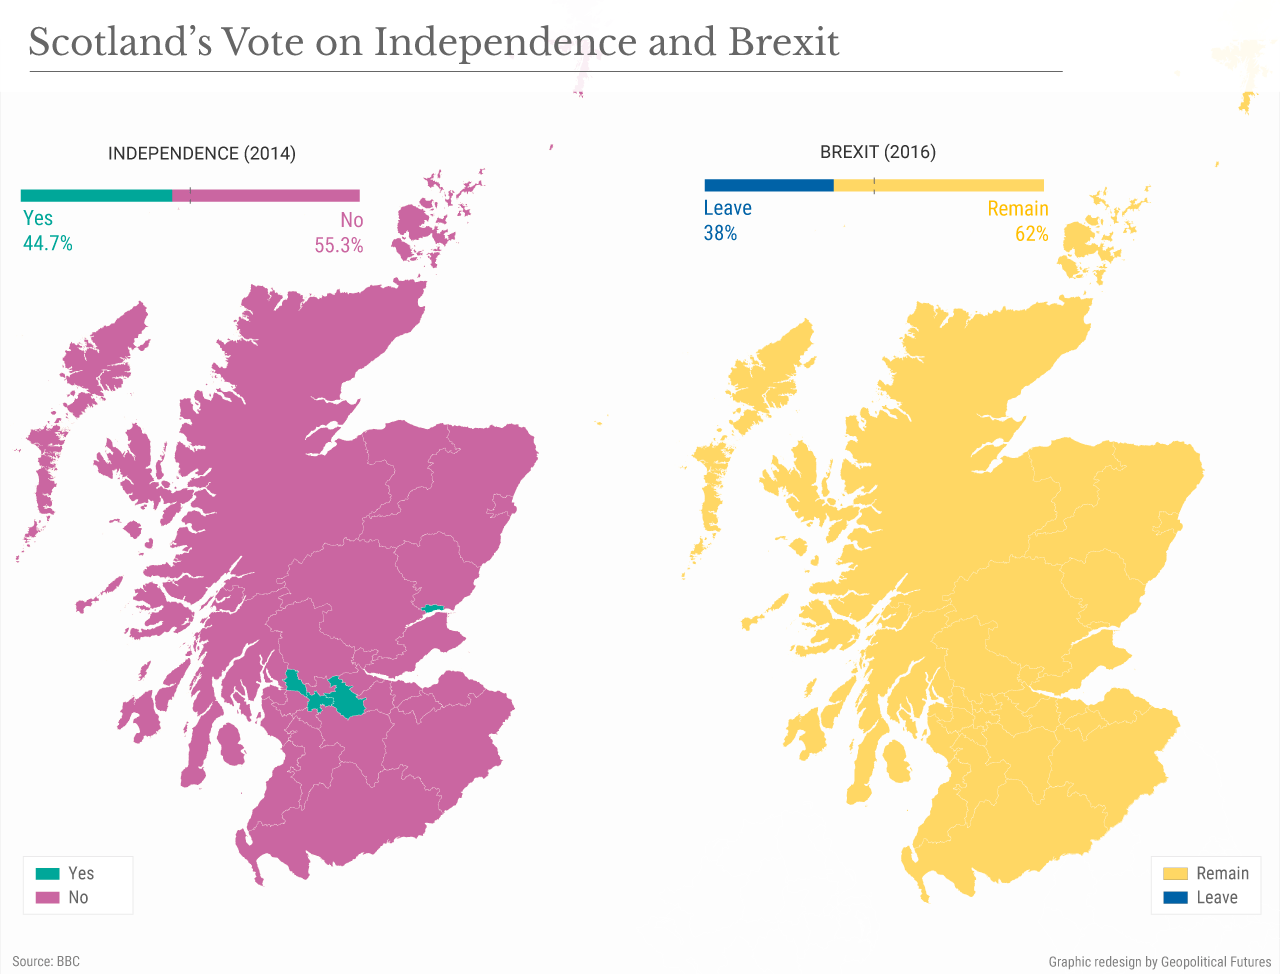 Scotland's Vote on Independence and Brexit